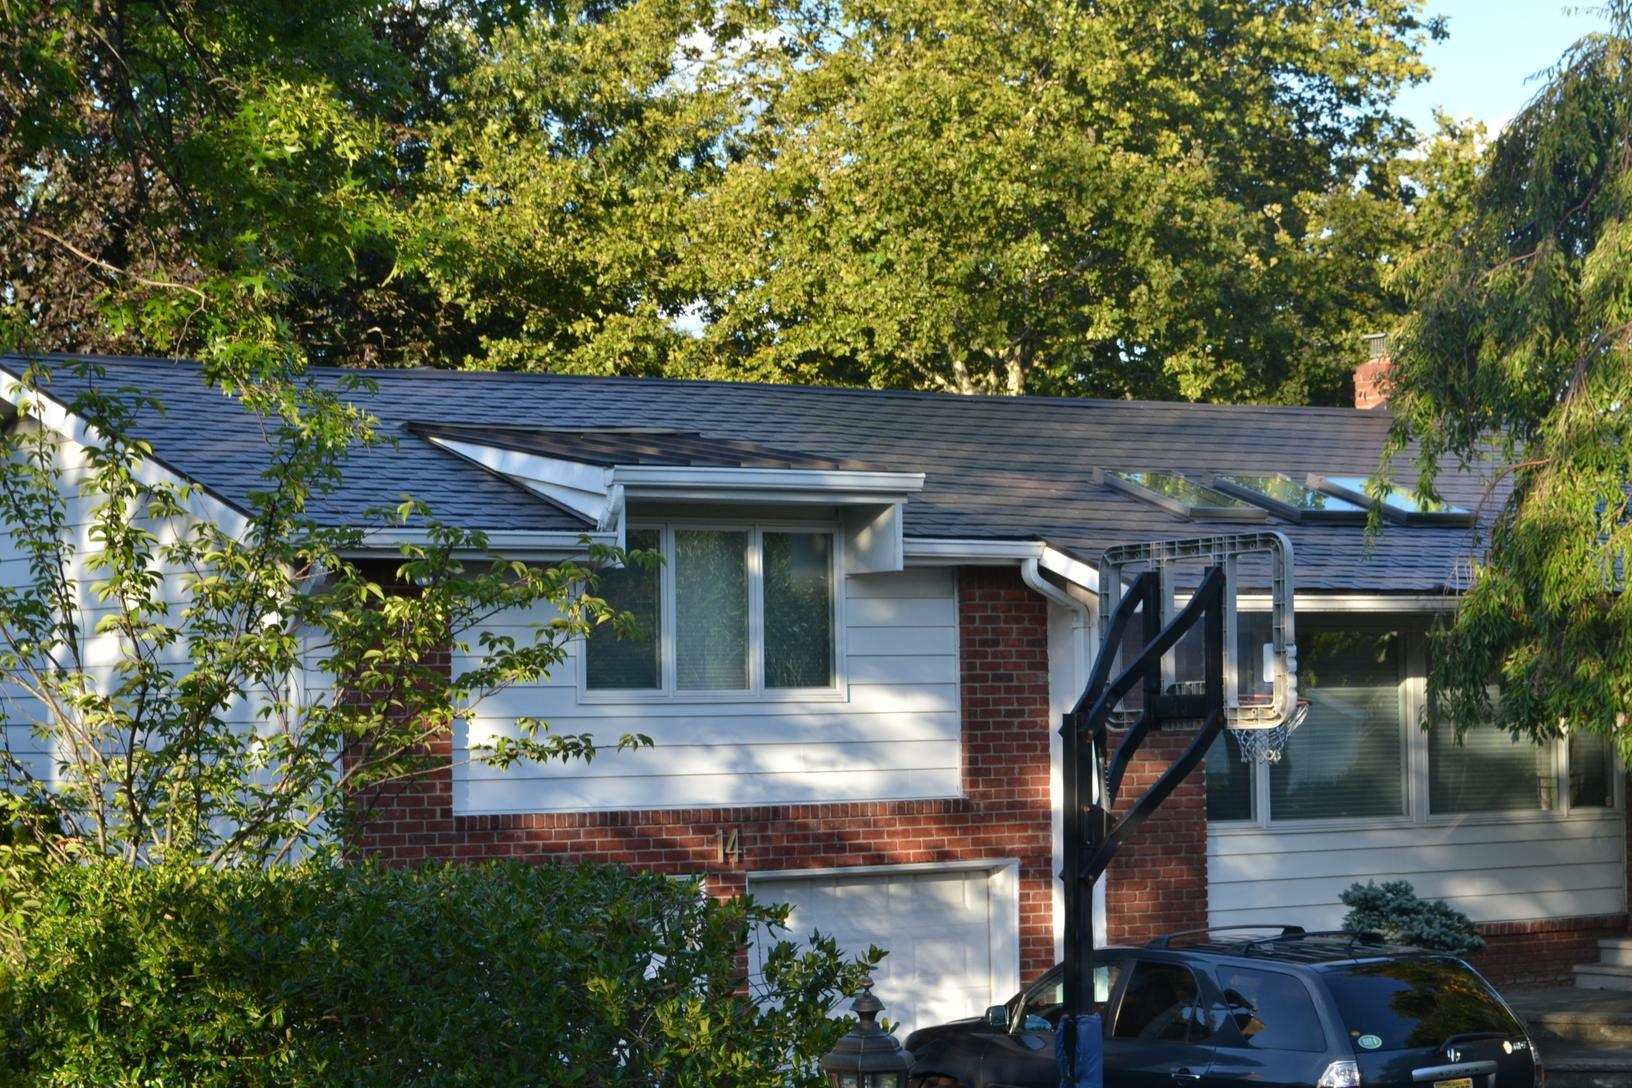 Brown Atas G-Tech Standing Seam and Metal Slate Roof Installation in Englewood Cliffs, NJ - After Photo